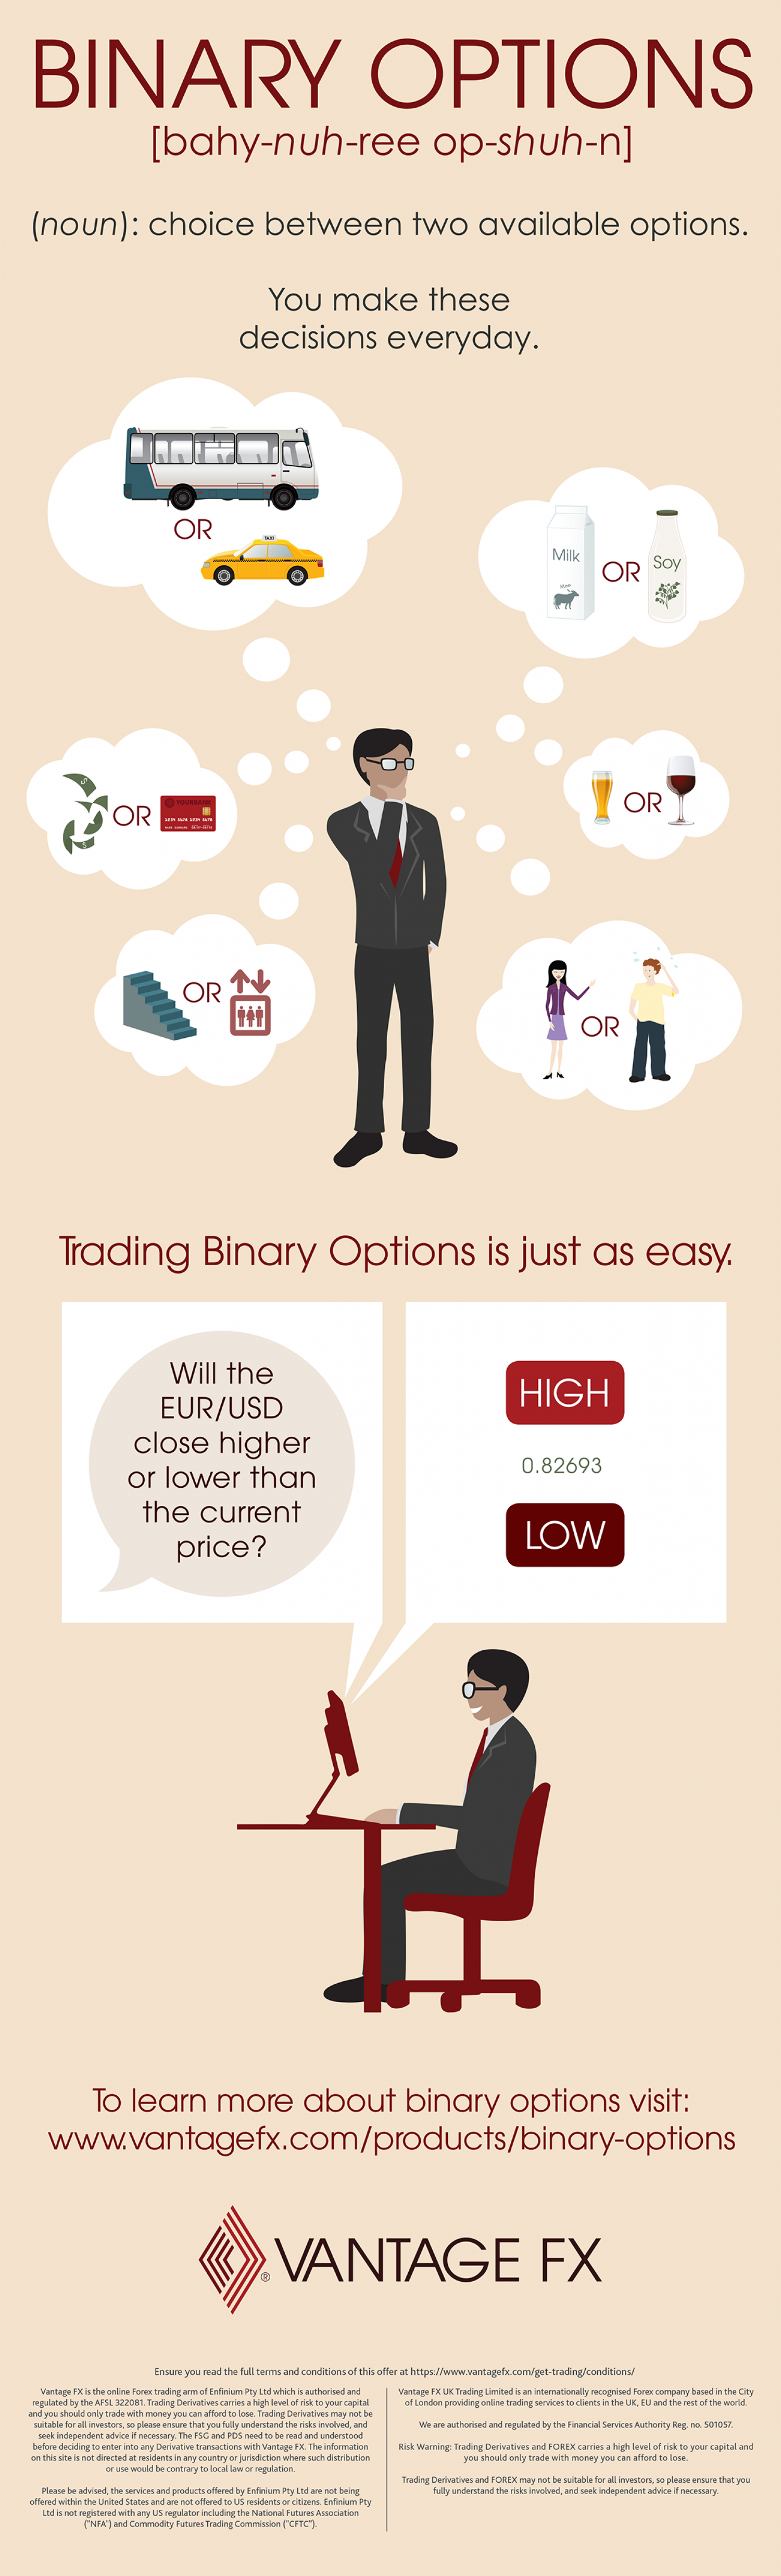 Buy binary options leads